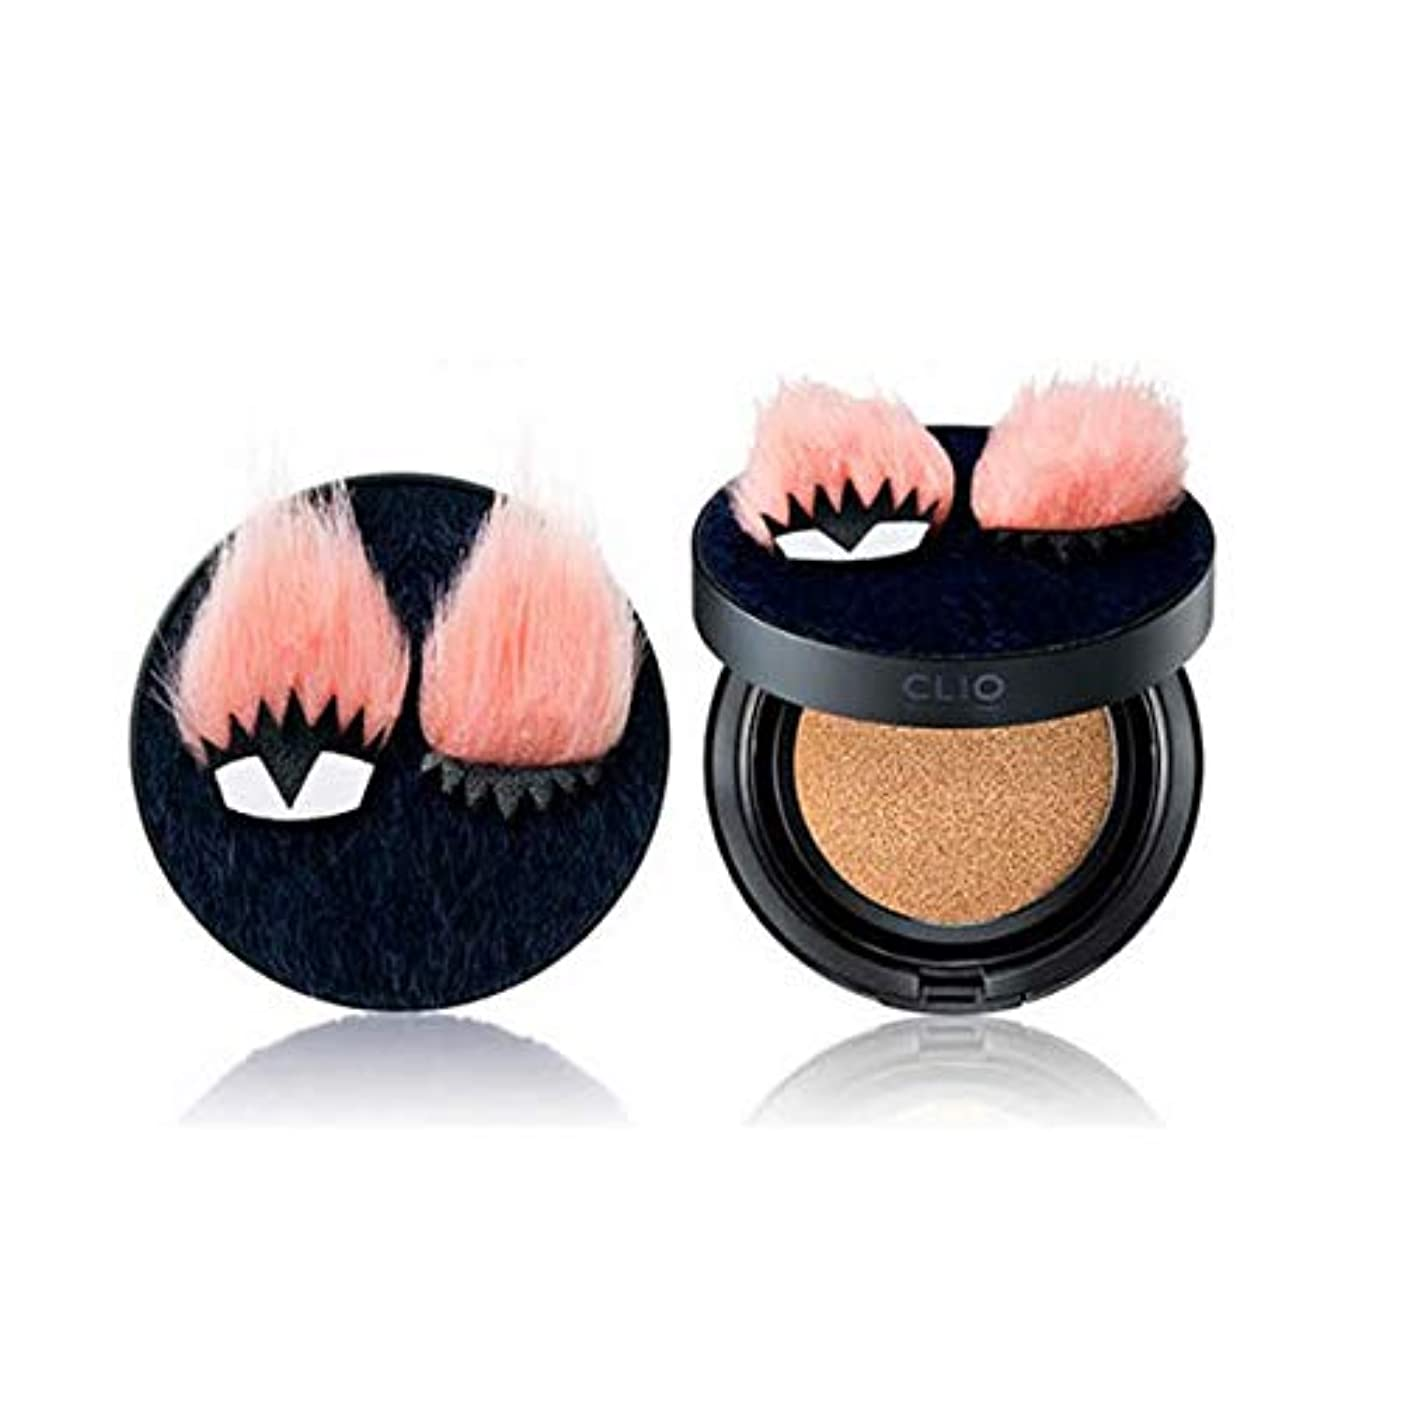 CLIO Super Super Kill Cover Conceal Cushion (3-BY(BLUE)) [Limited Edition]/ / クリオ スーパースーパーキルカバーコンシルクッション [並行輸入品]